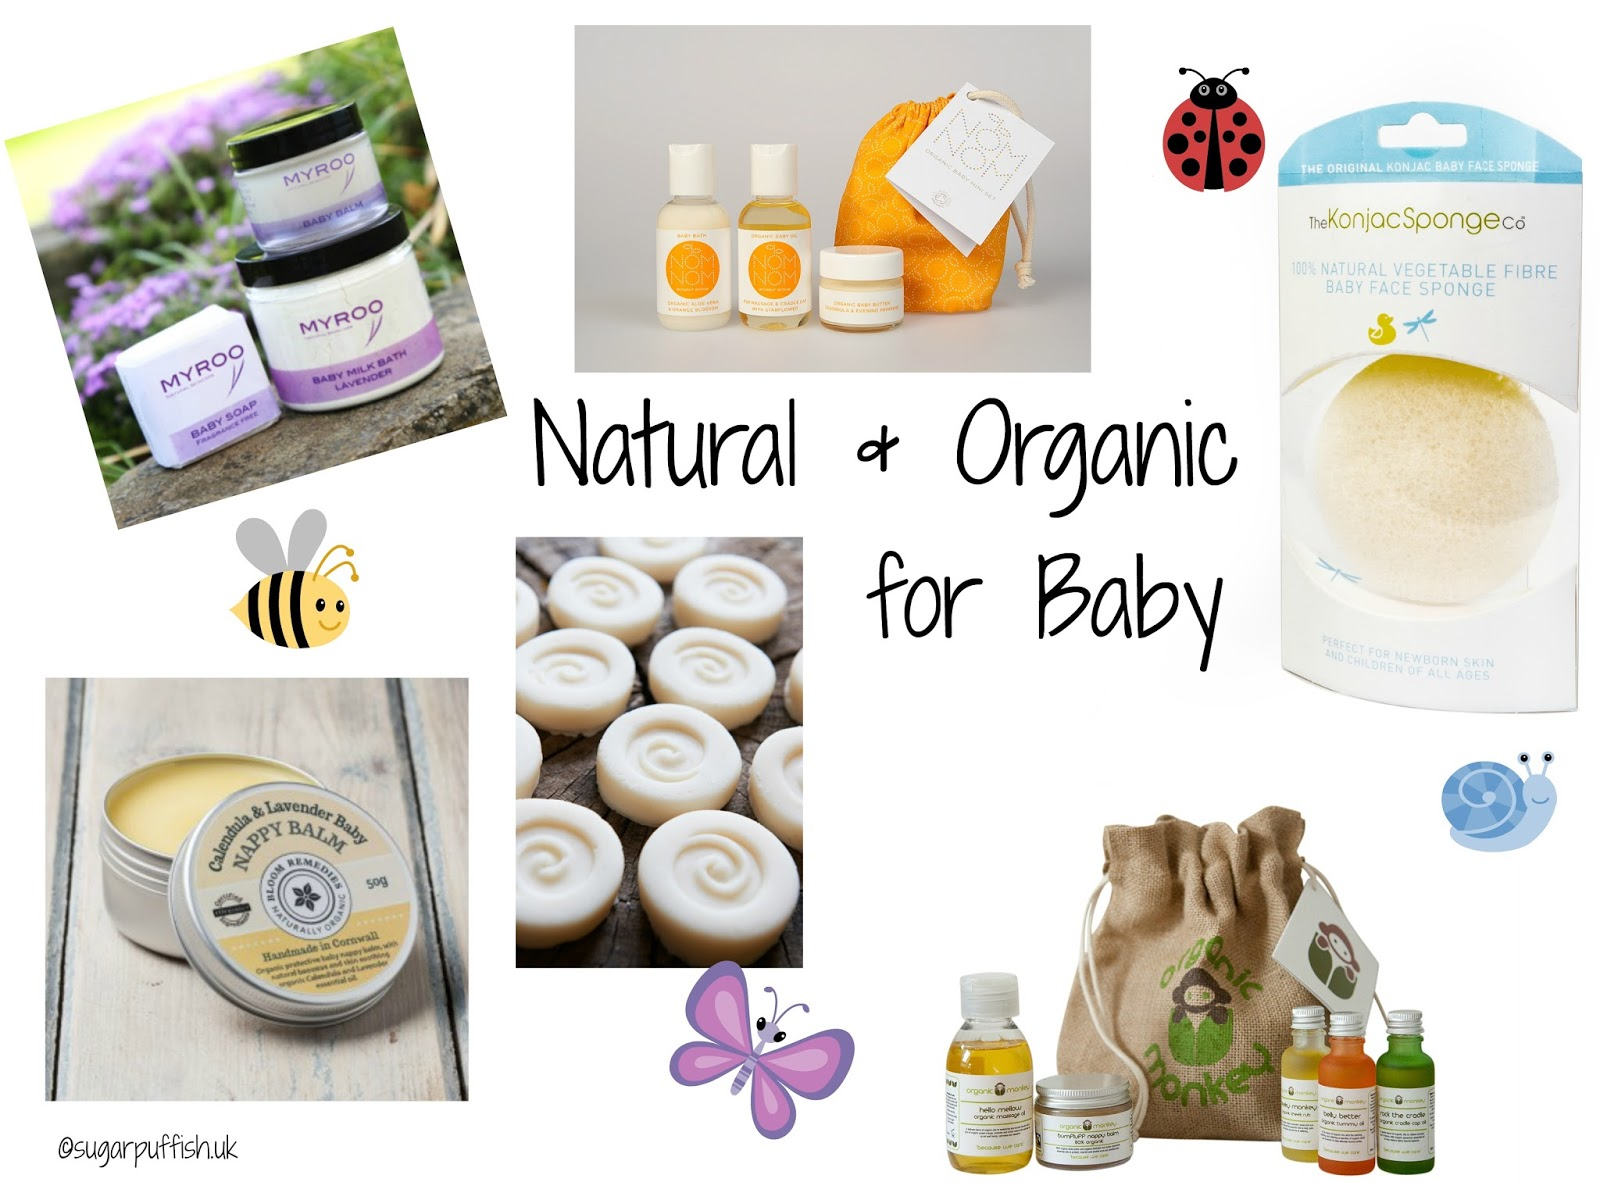 Natural skincare for mother and baby